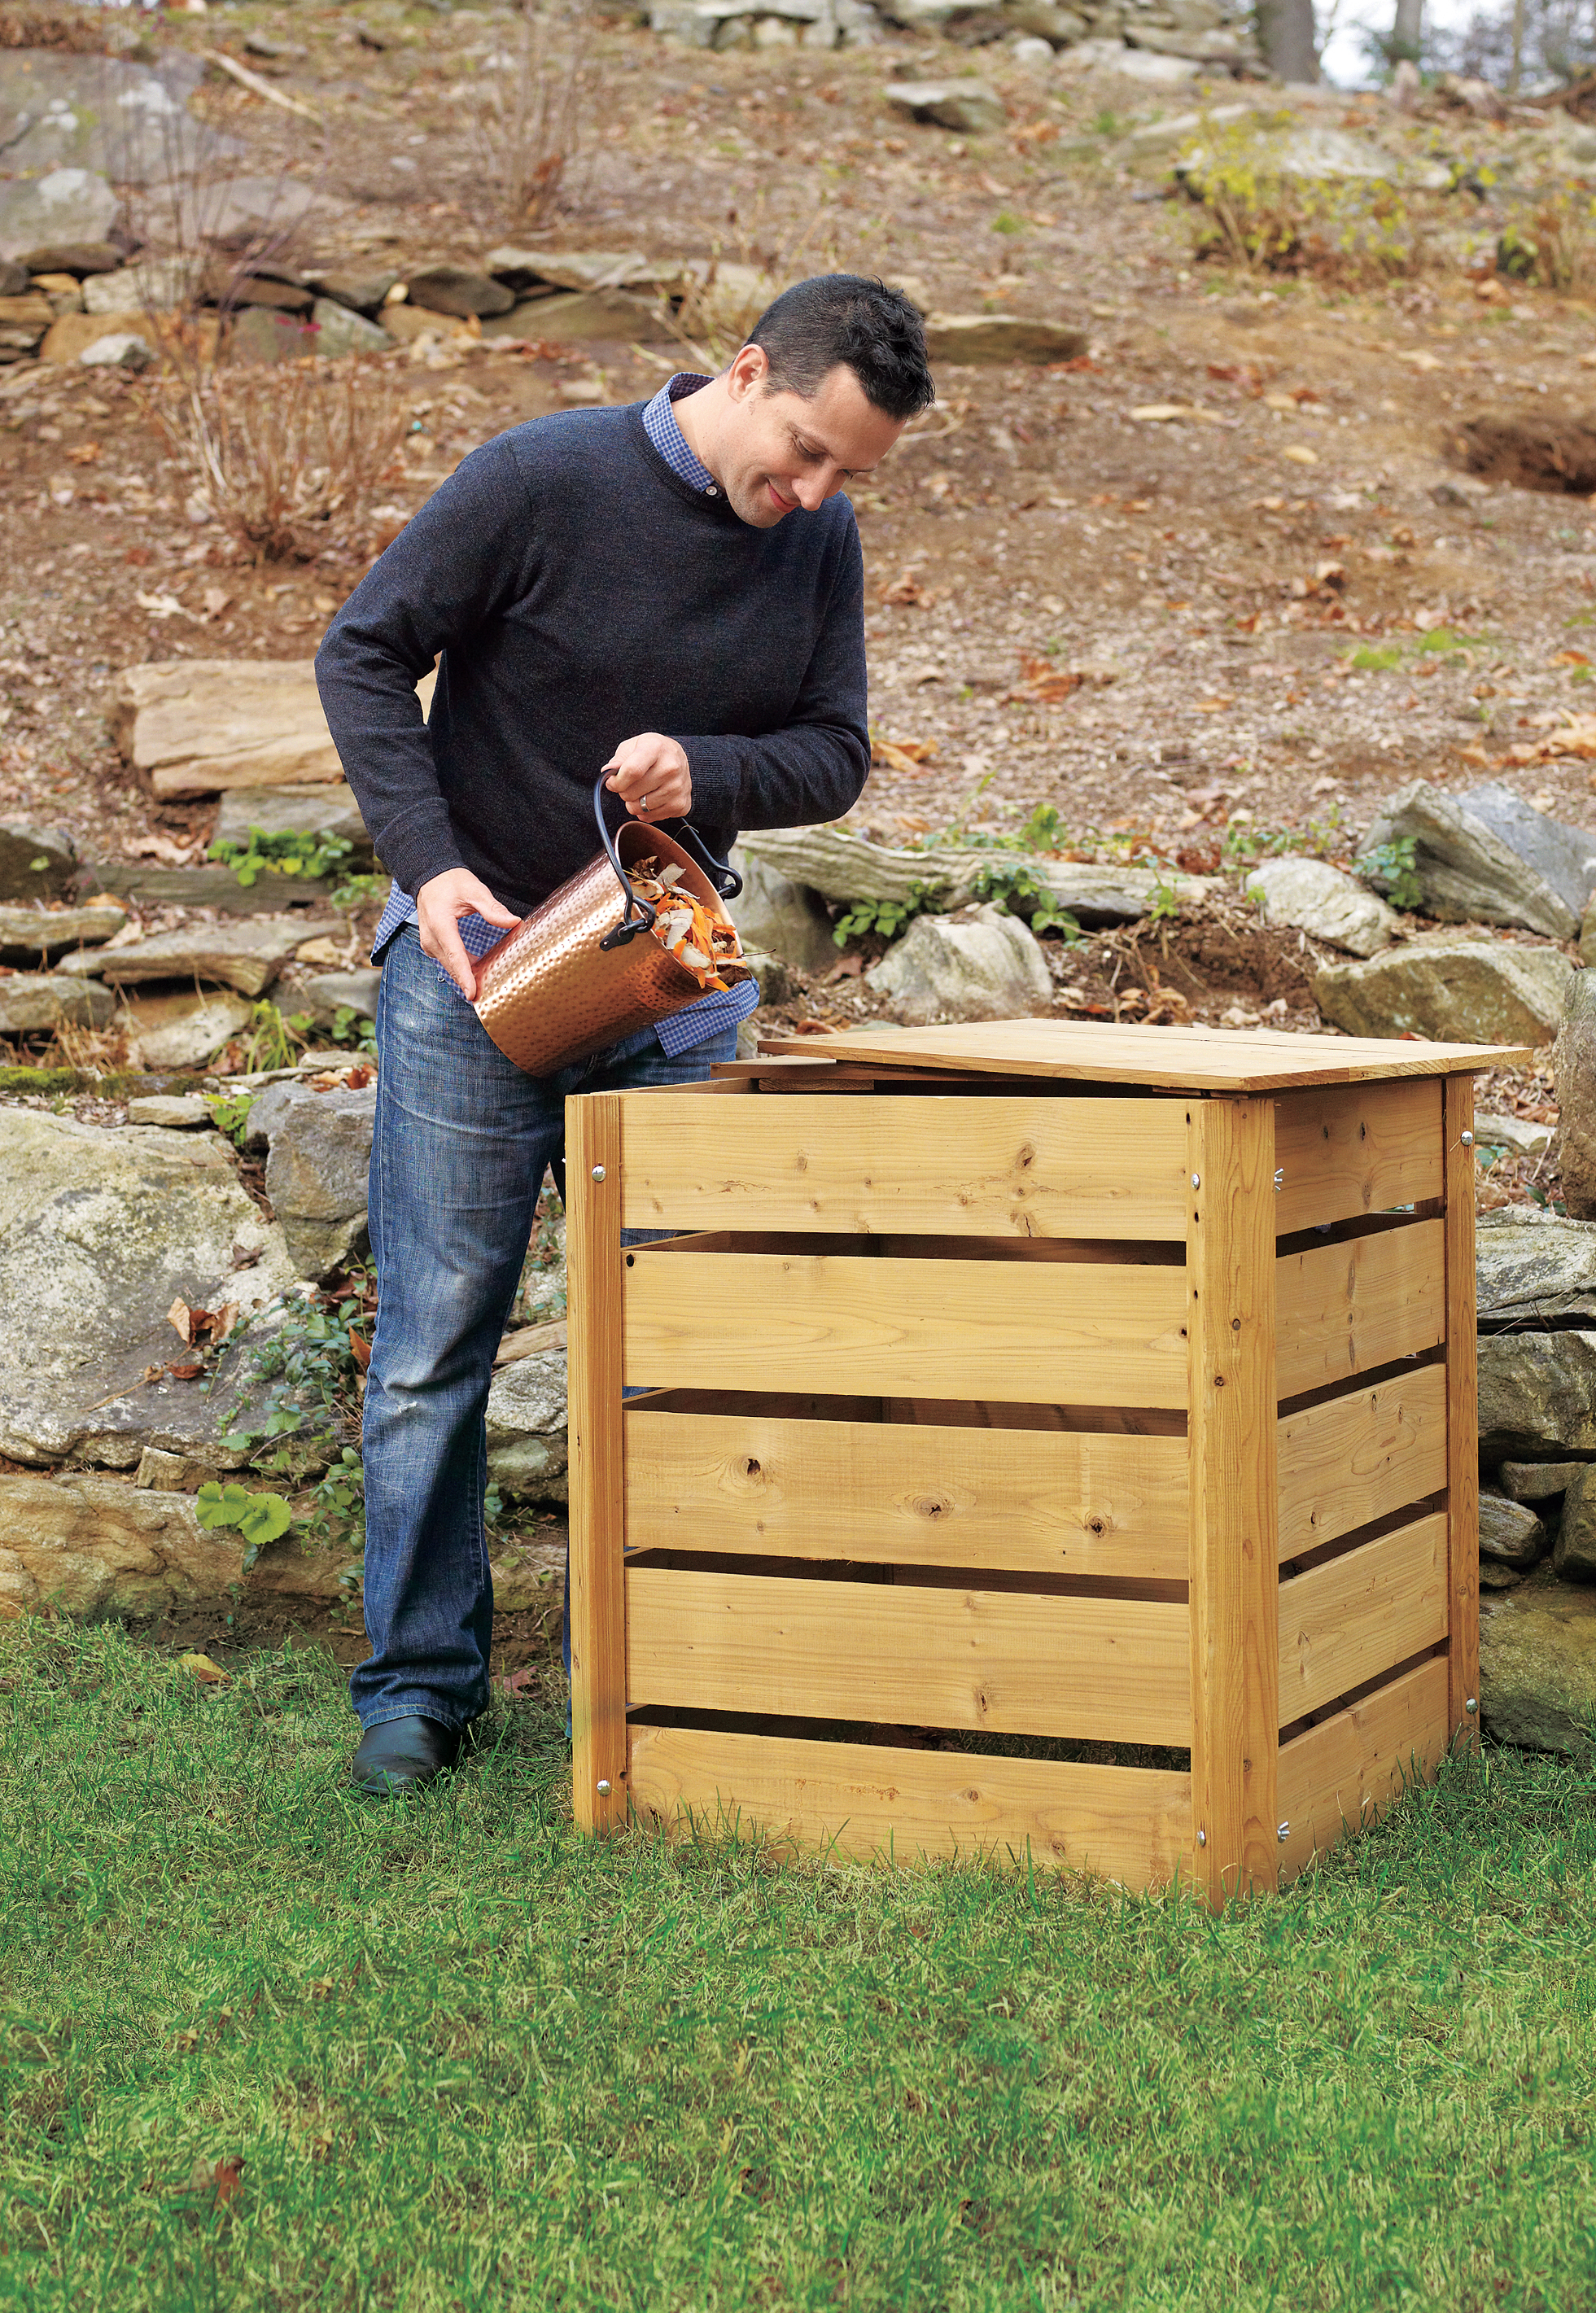 Man Dumps Material From Compost Pail Into Wooden Compost Bin